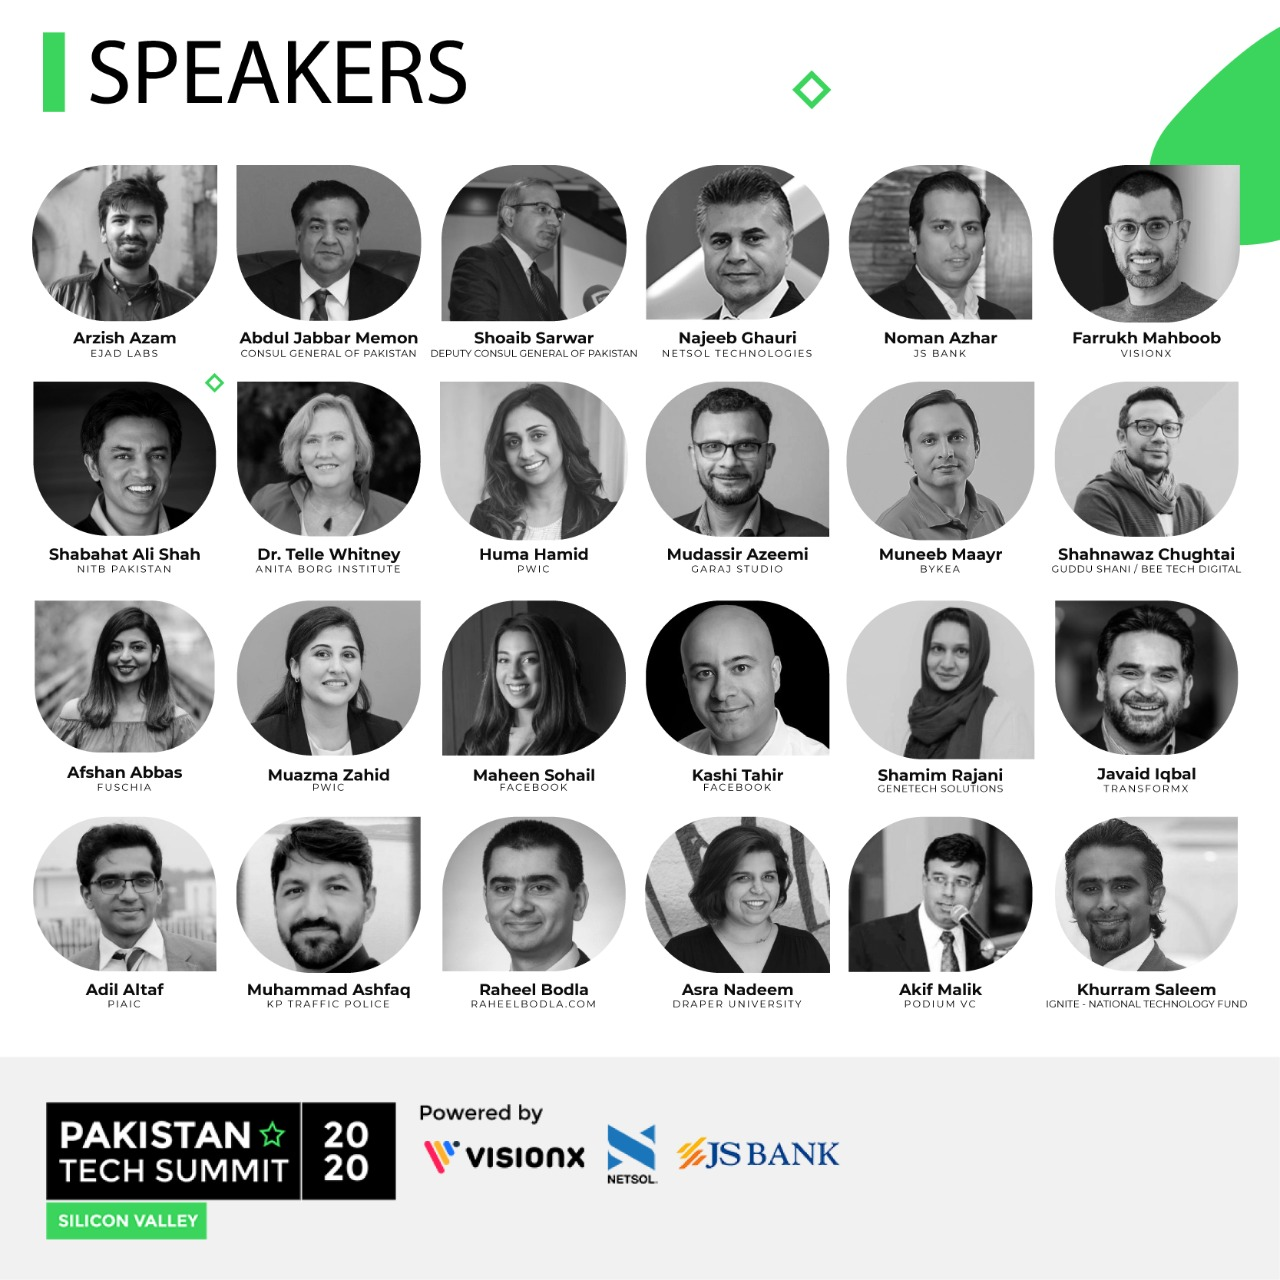 Pakistan Tech Summit - Speakers